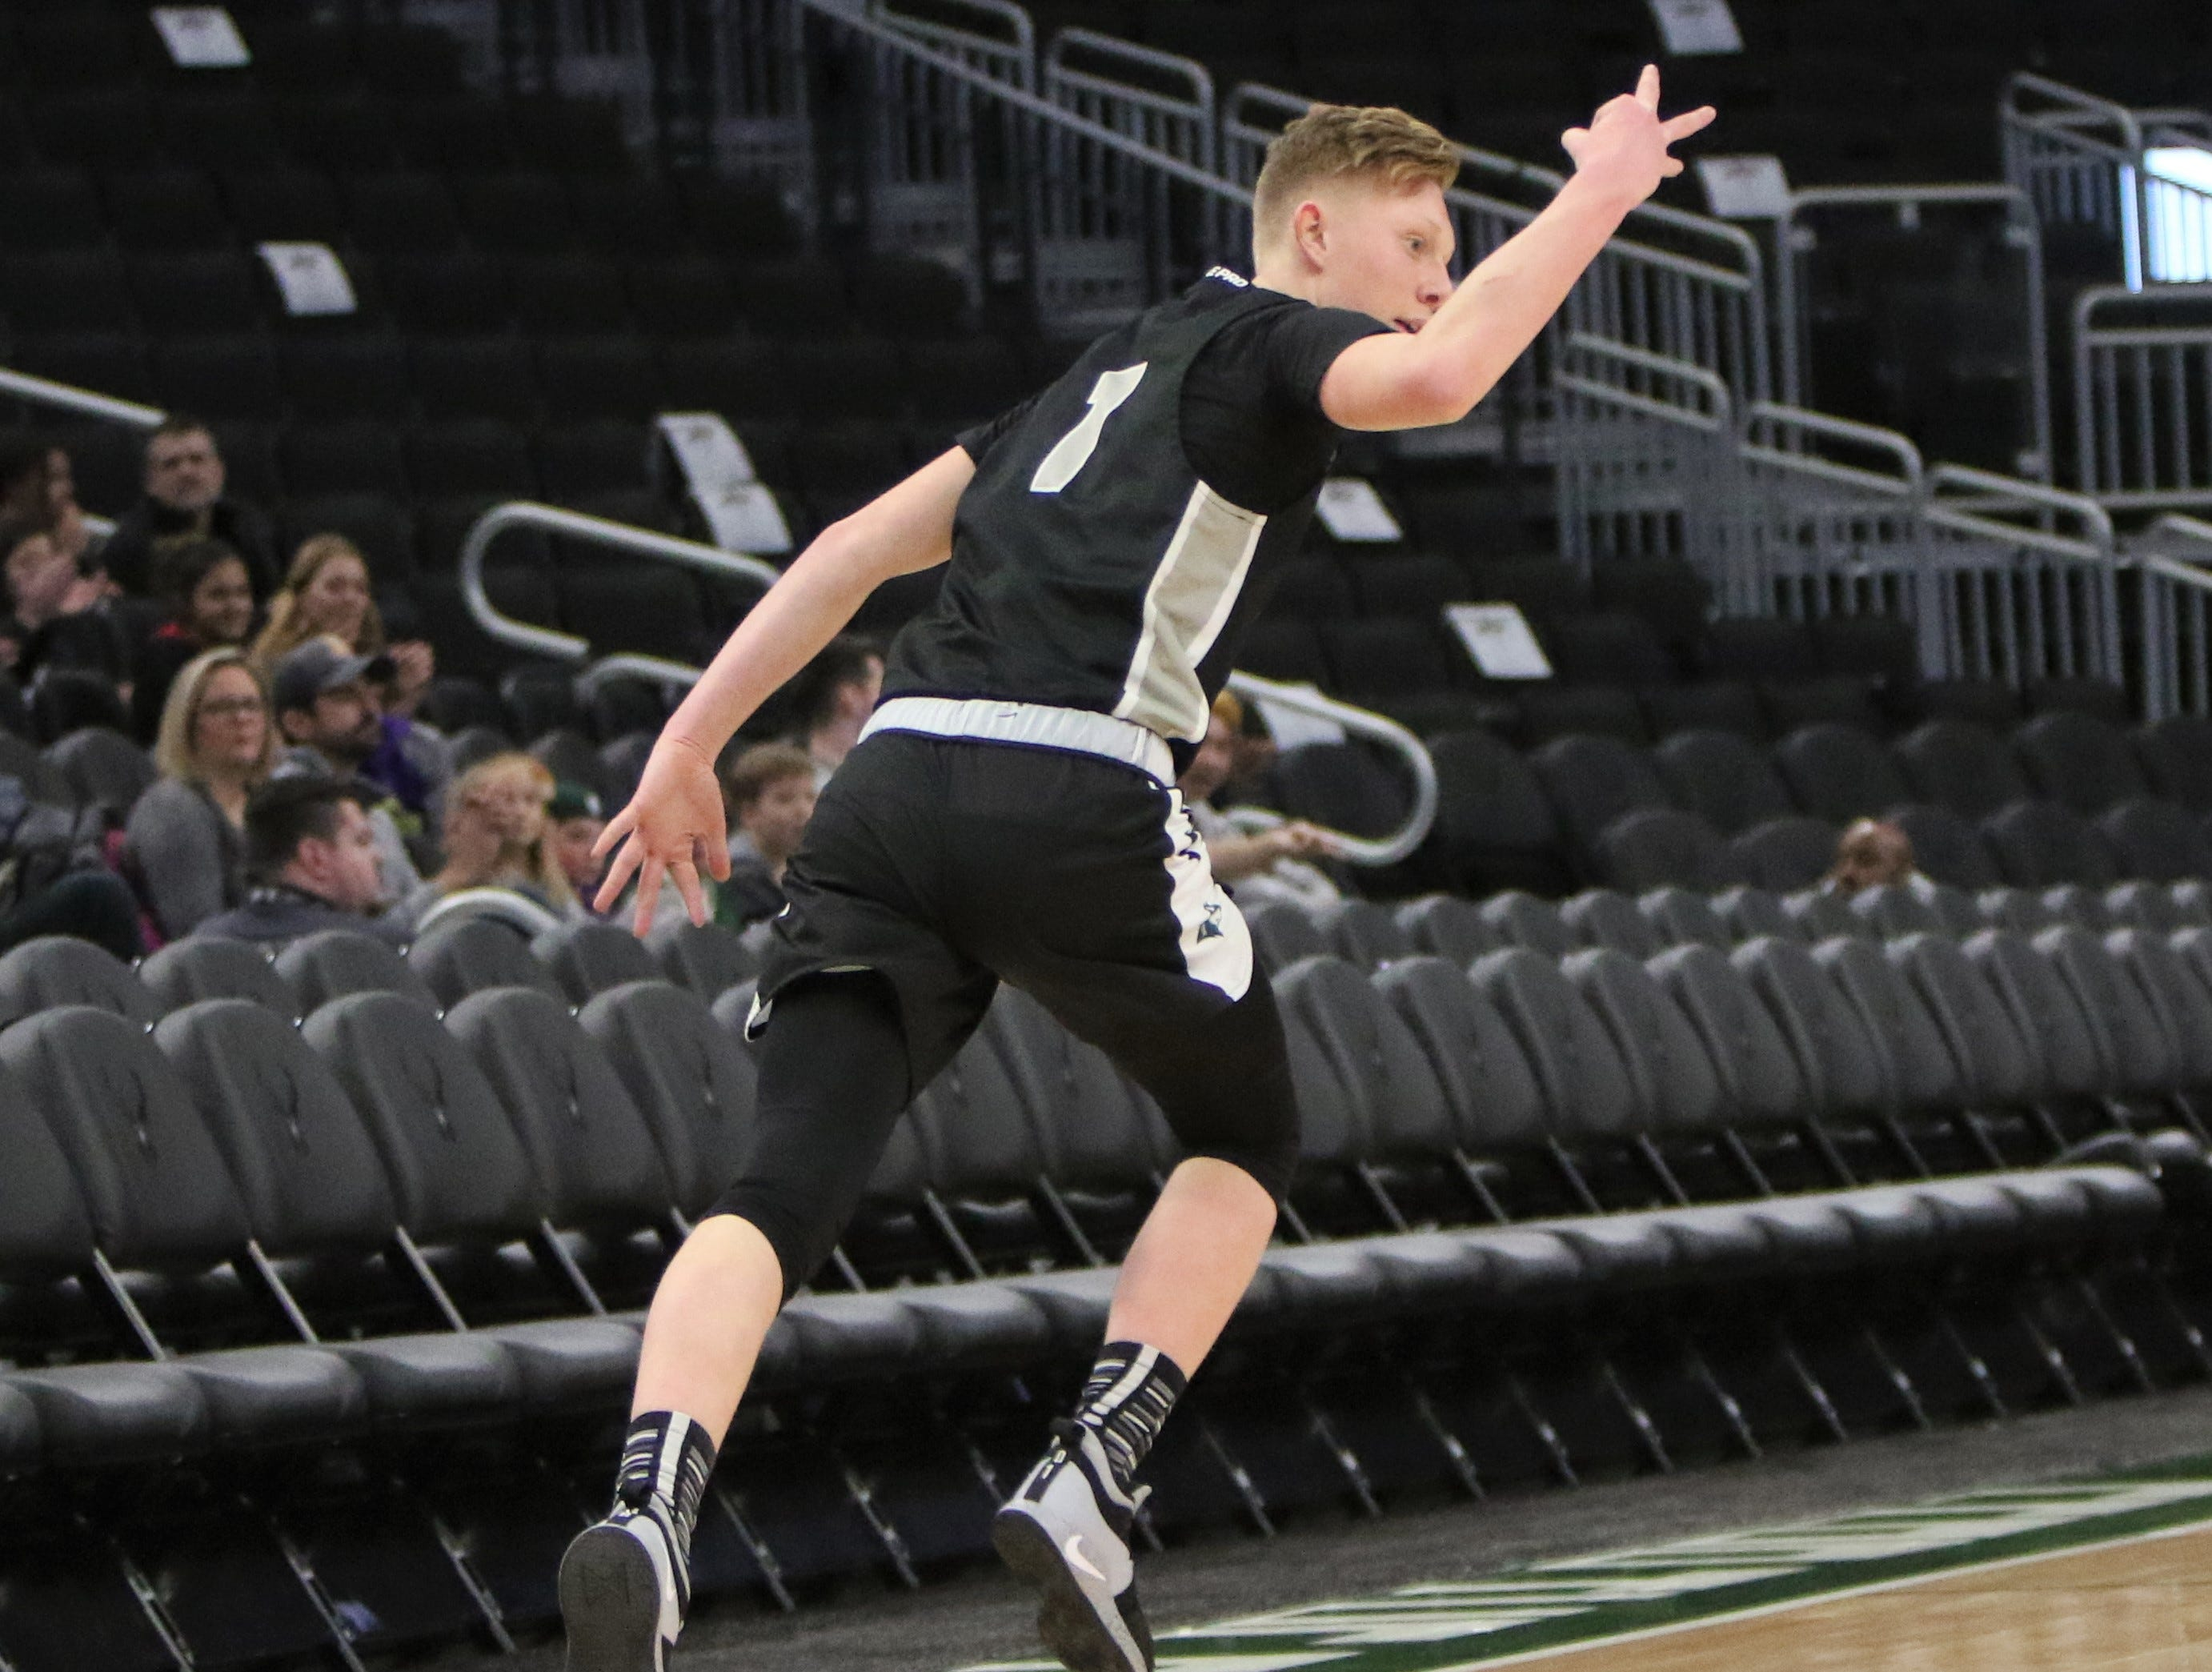 West Allis Hale guard Matt Behling hoists up three fingers after sinking a three-pointer against New Berlin Eisenhower on Tuesday, Jan. 1, at Fiserv Forum.